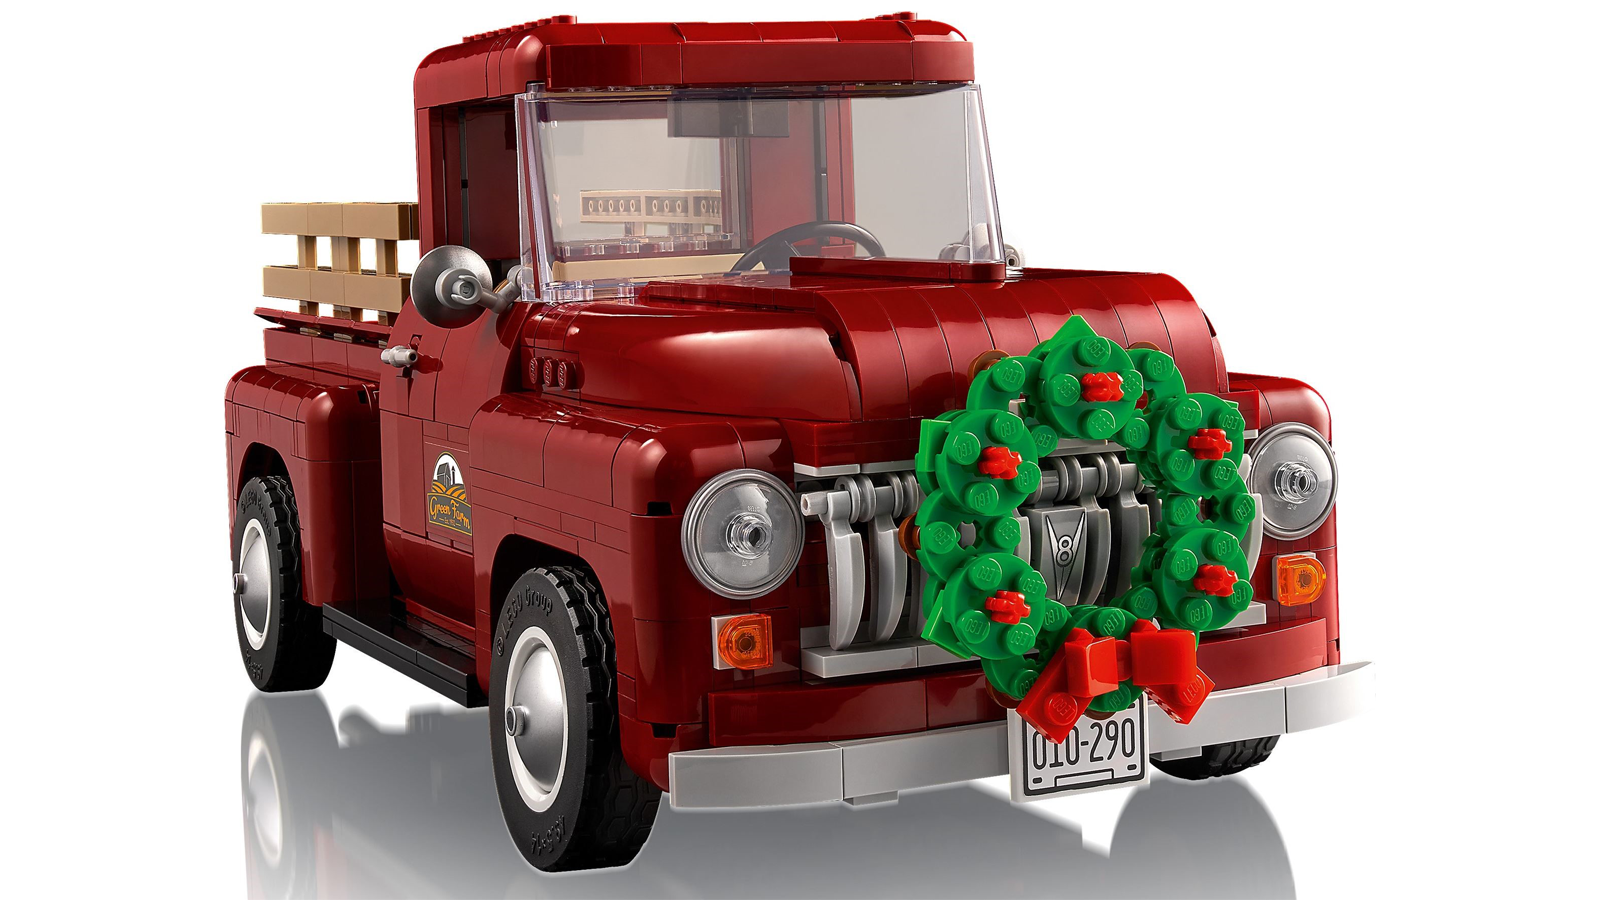 Lego van with Christmas wreath on the grille